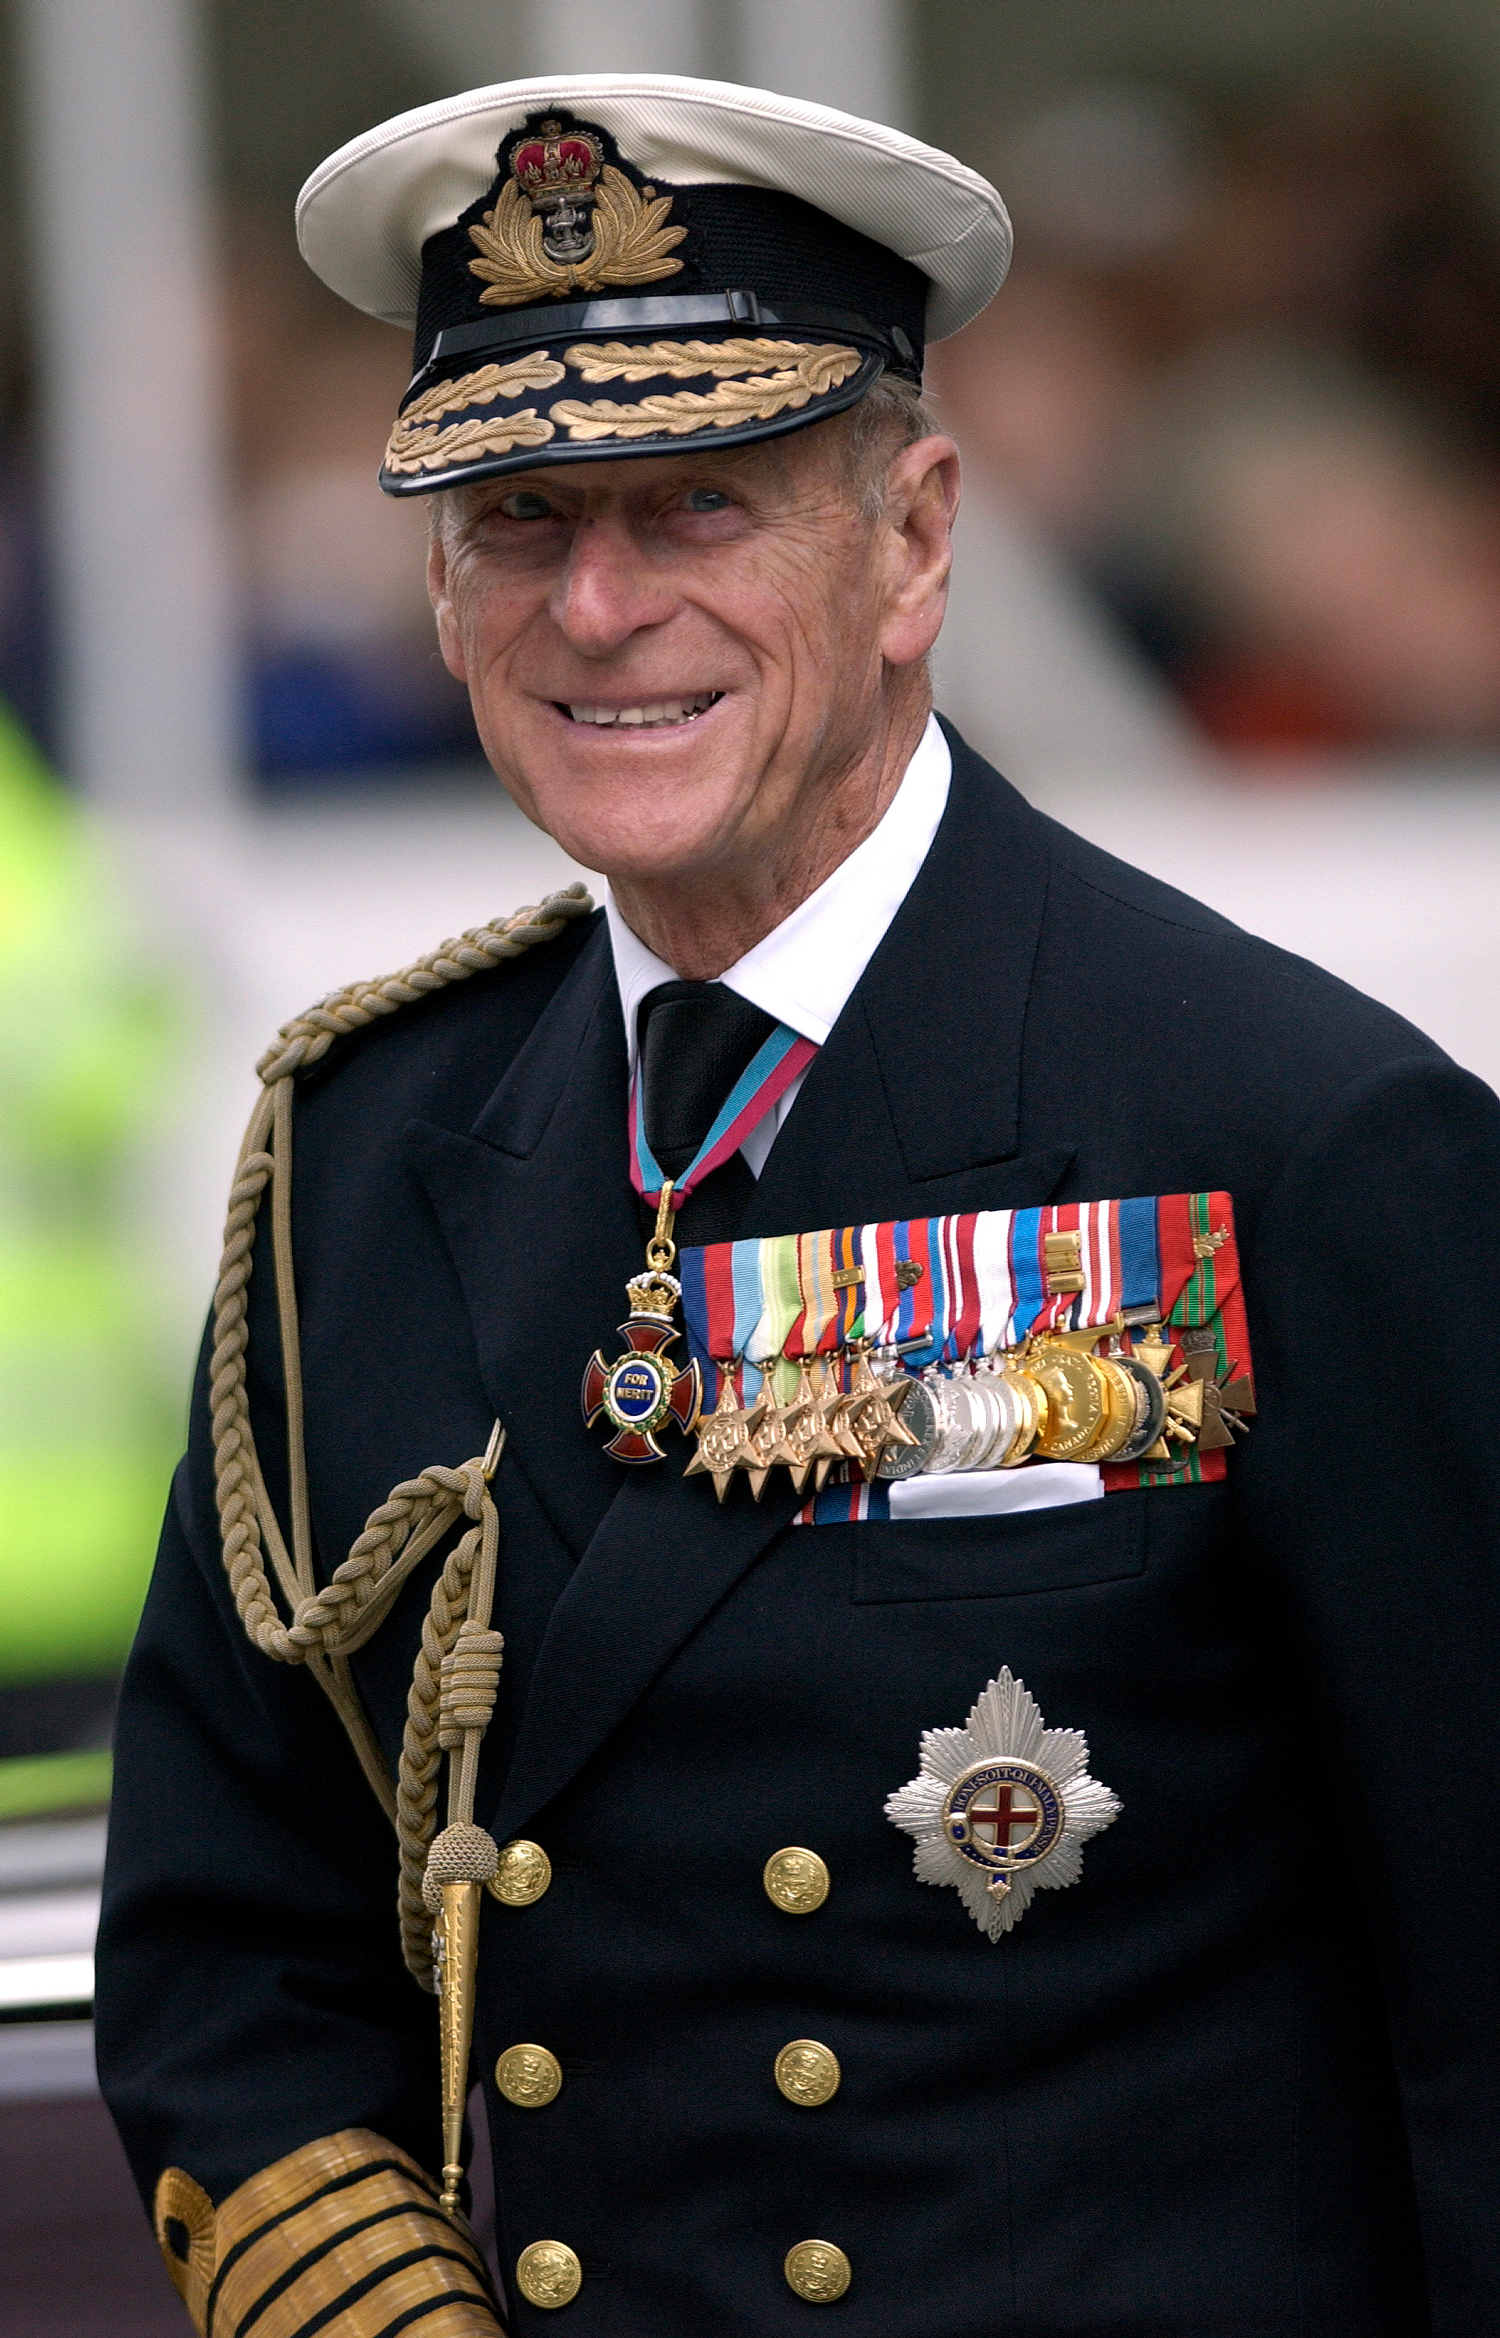 A photo of Prince Philip in dress uniform. He is smiling at the camera.